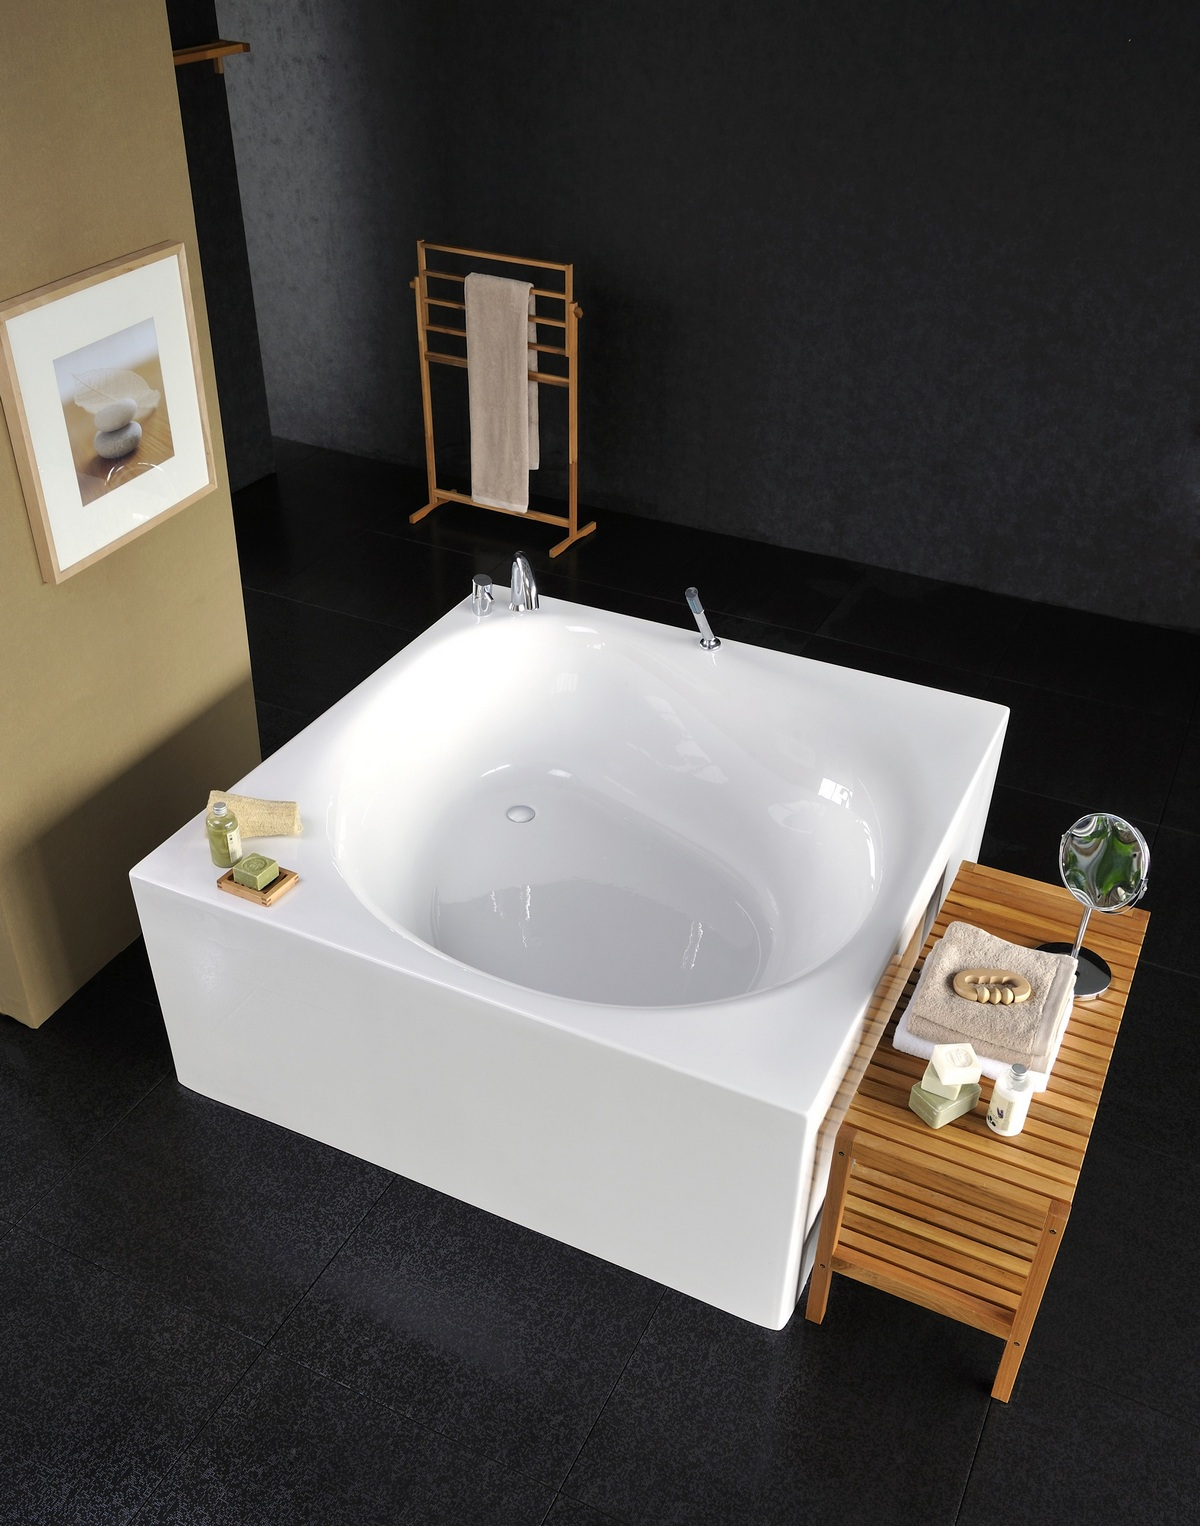 Aquatica Liquid Space Freestanding Acrylic Bathtub